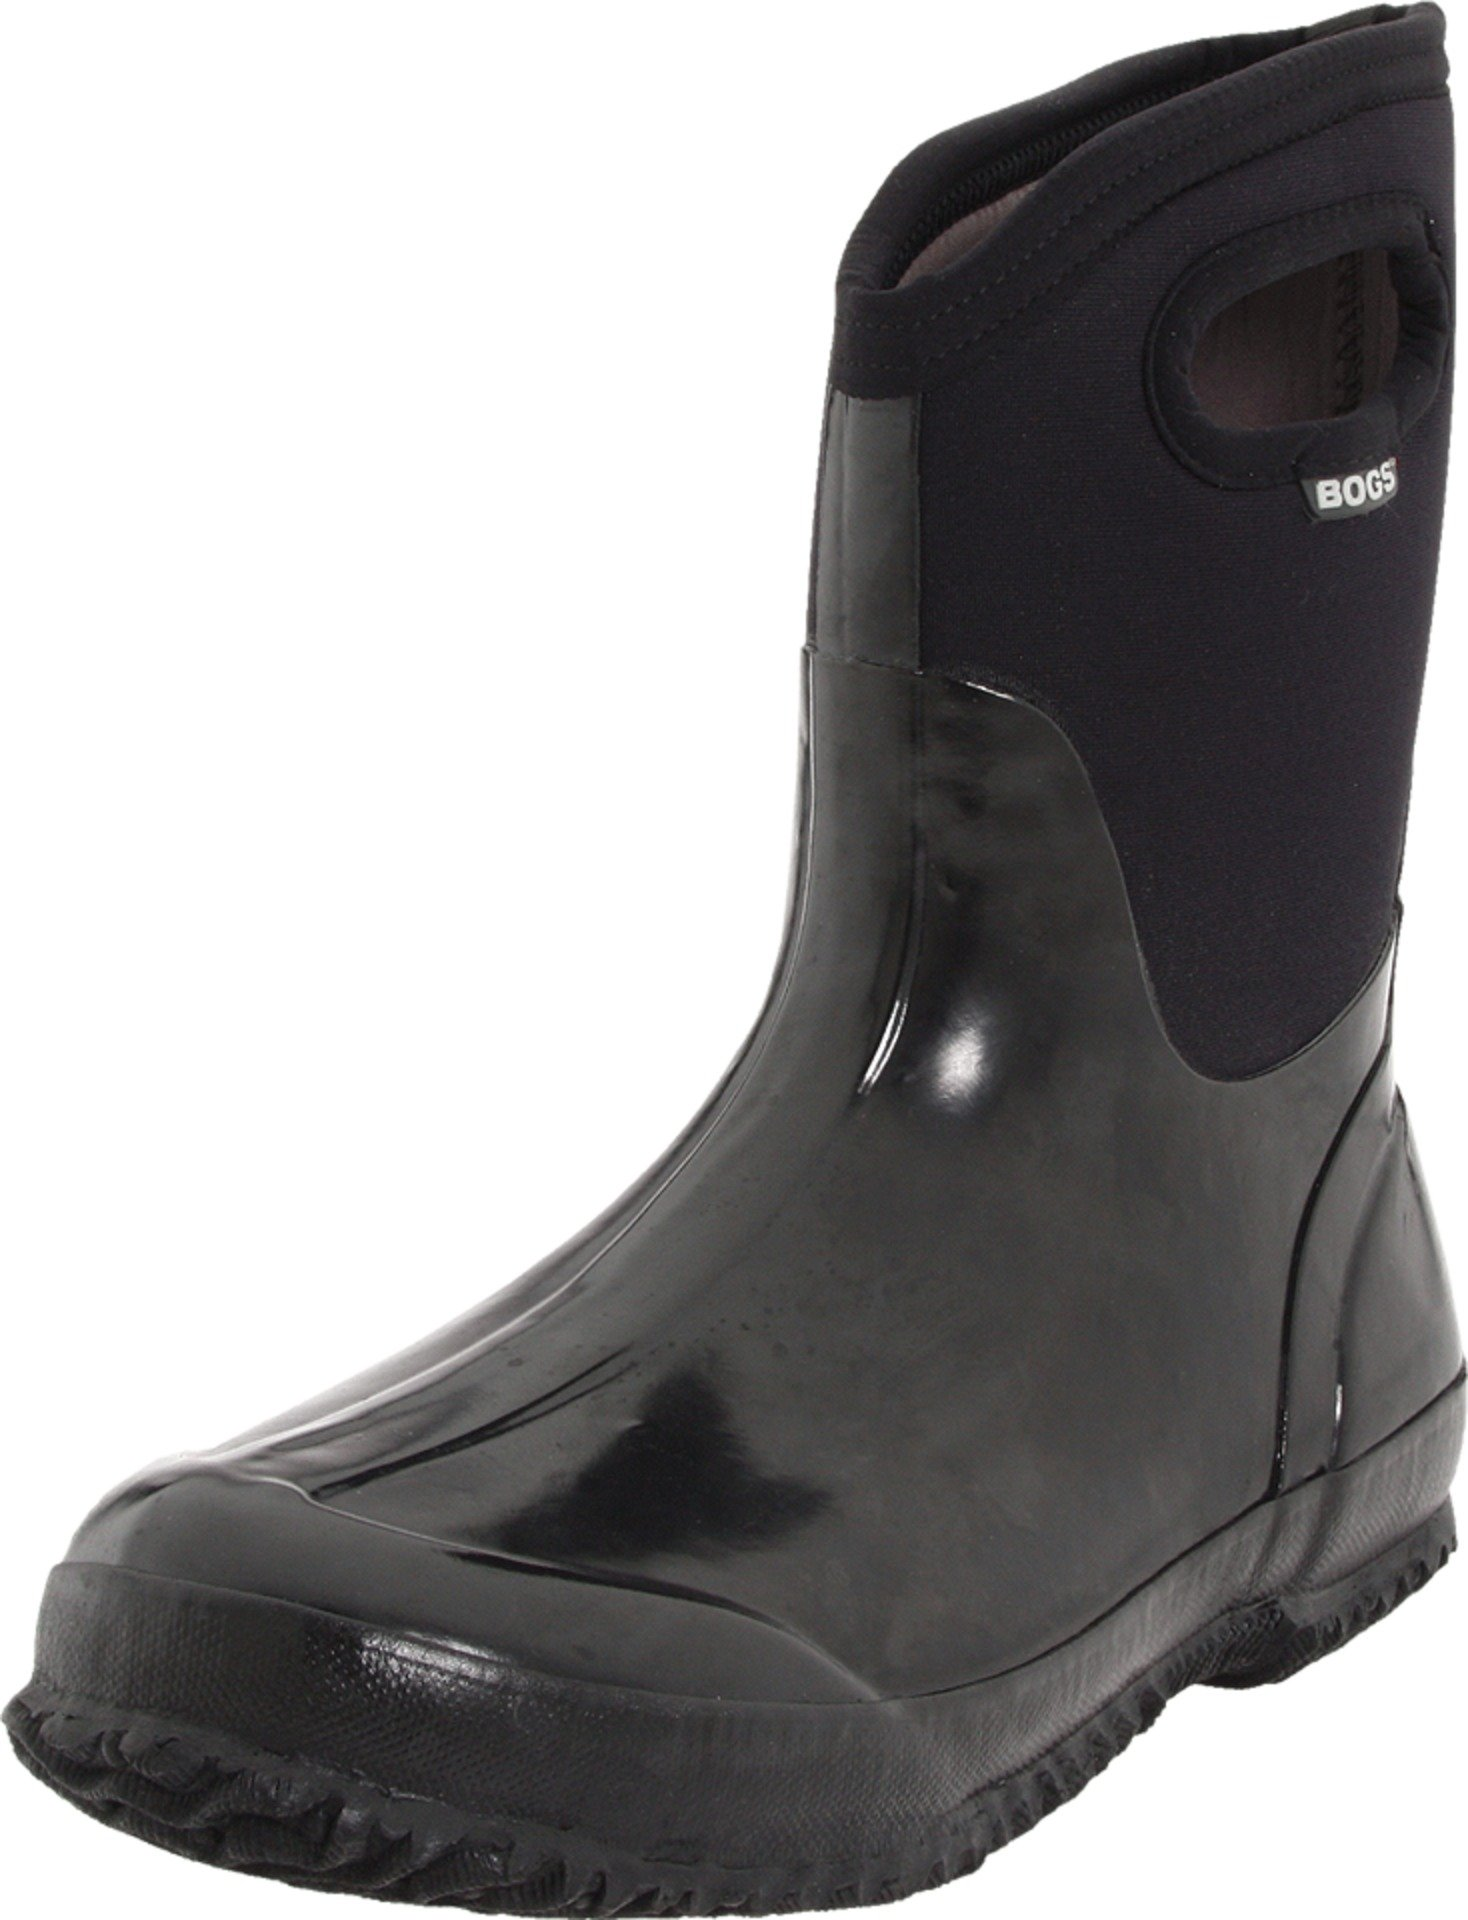 Bogs Women's Classic Mid Waterproof Insulated Boot, Black,9 M US